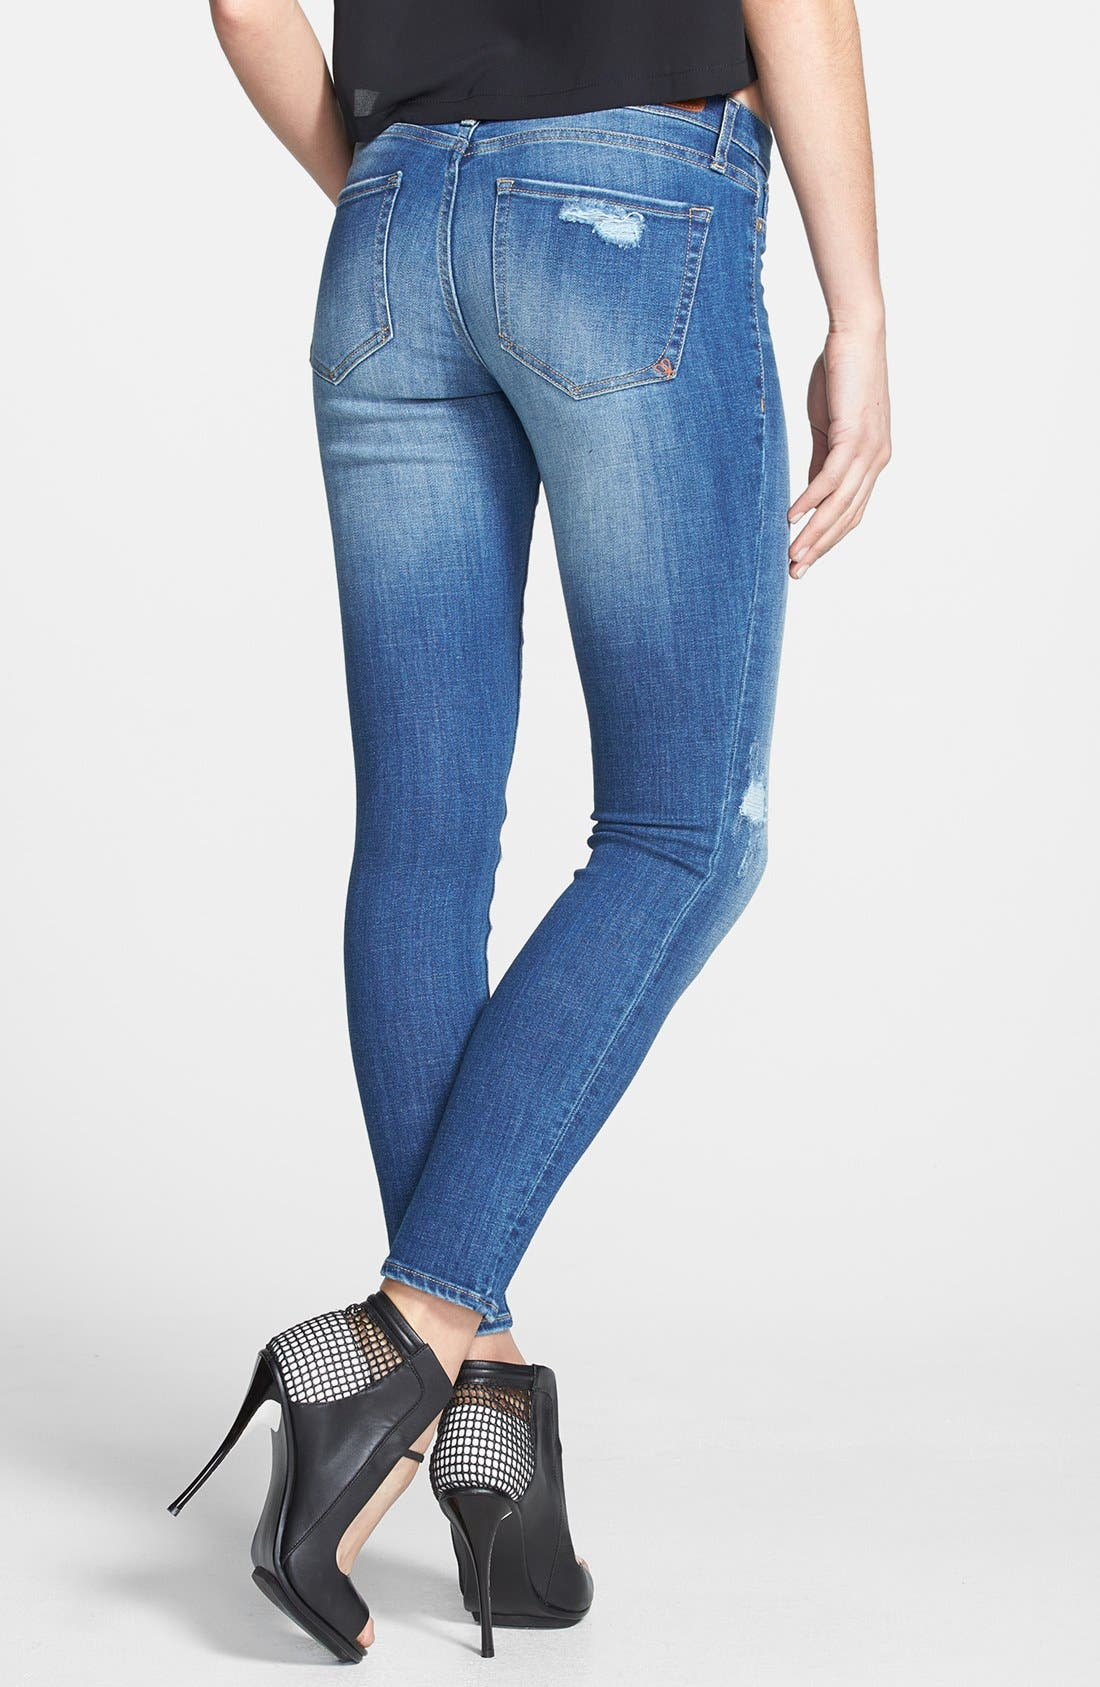 Alternate Image 2  - Dittos 'Jessica' Distressed Low Rise Skinny Jeans (Calypso)